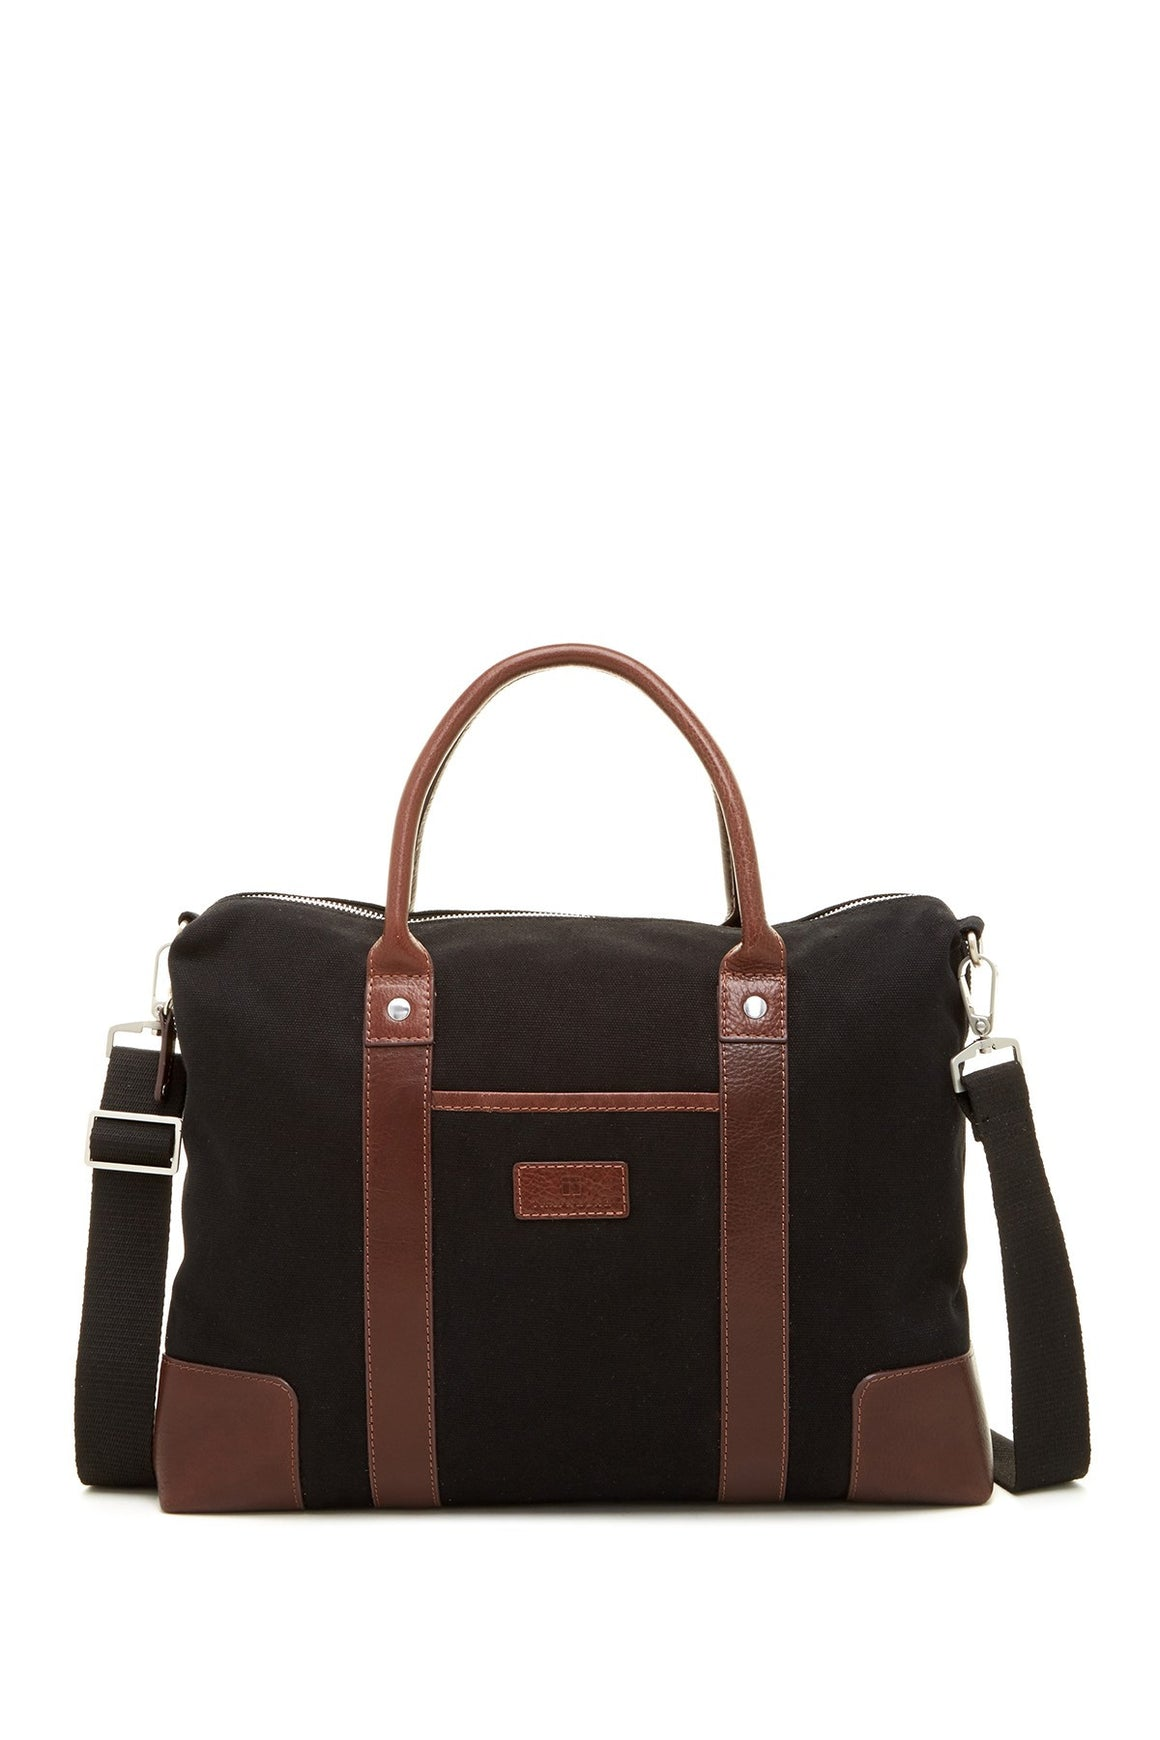 Trafalgar Canvas & Leather Laptop Brief Bag with Strap Black/Toffee